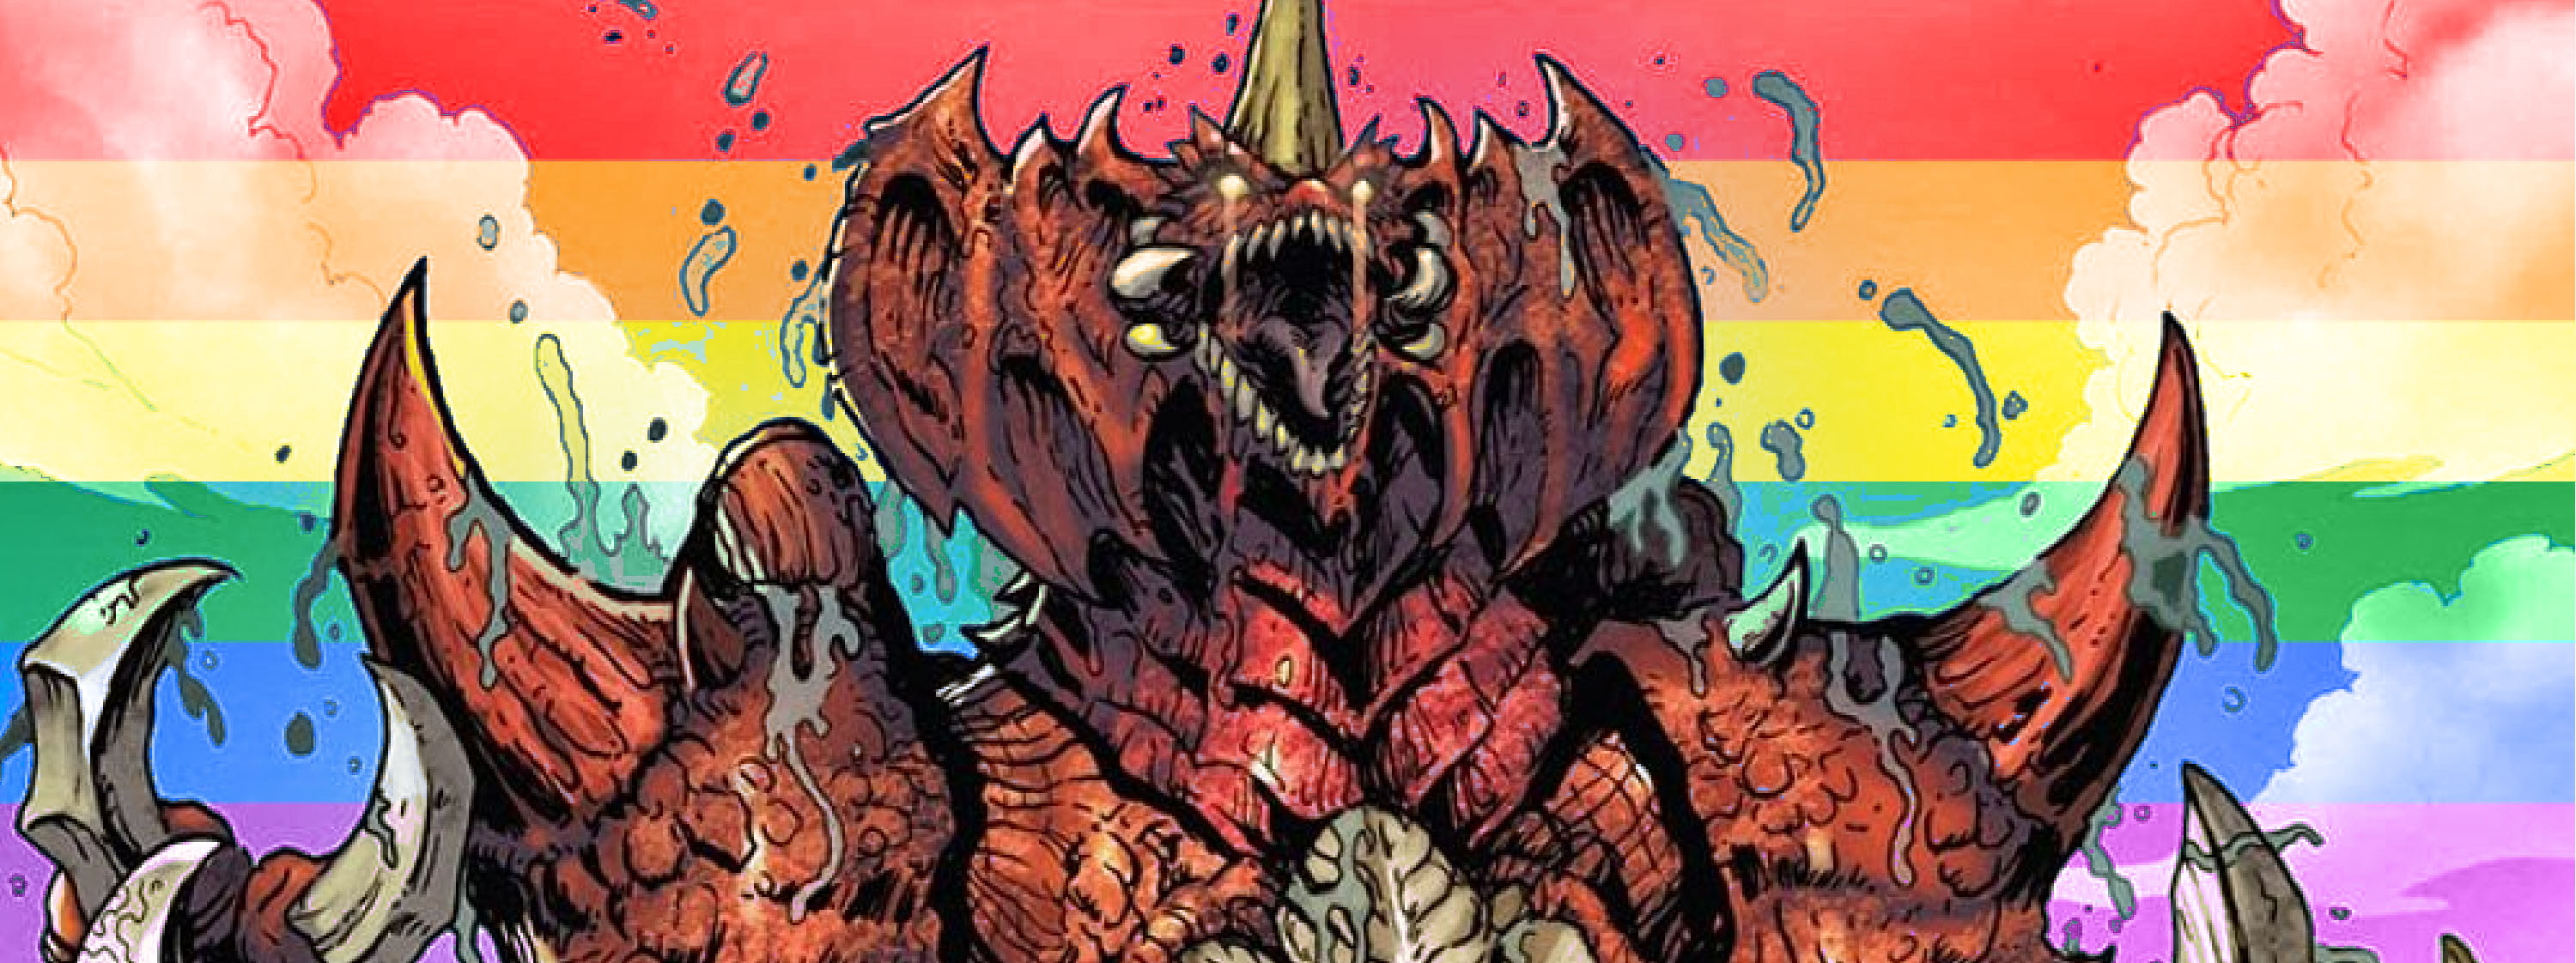 Destroyah monster in comic book style with rainbow flag in the background.